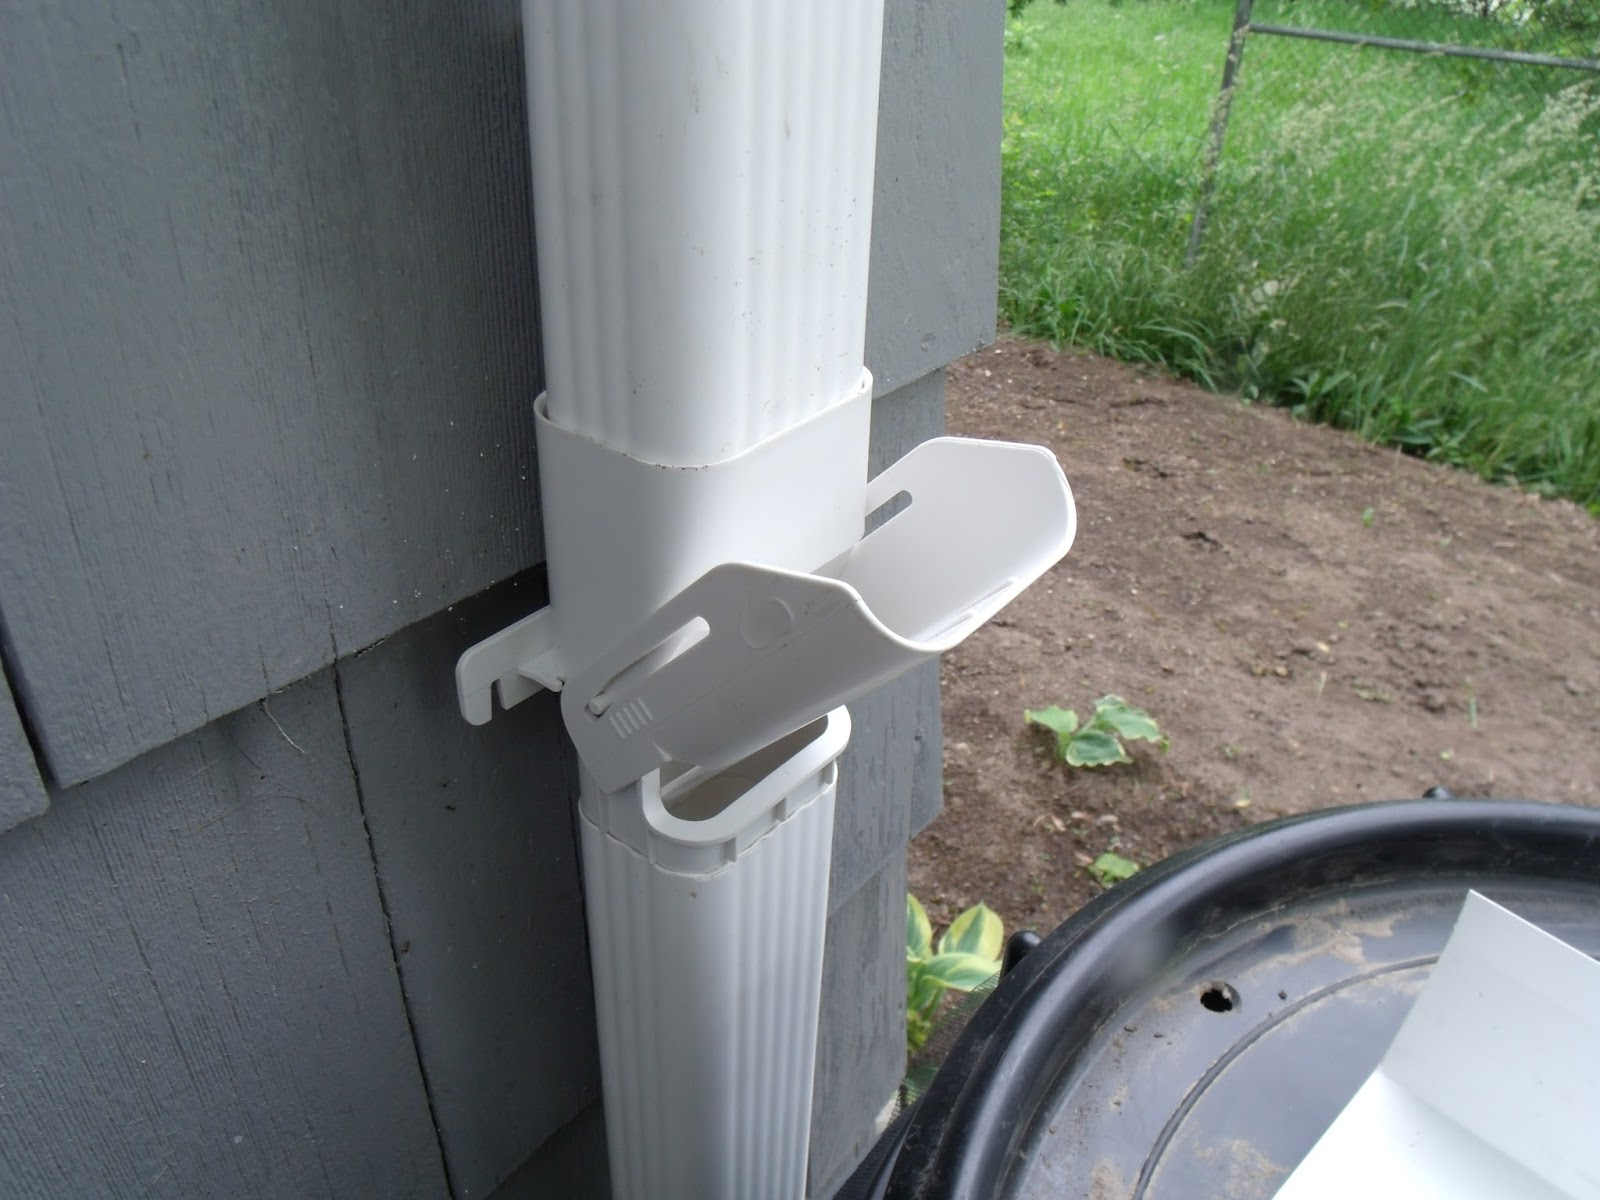 How to install a downspout in a gutter - How To Install A Downspout In A Gutter 19